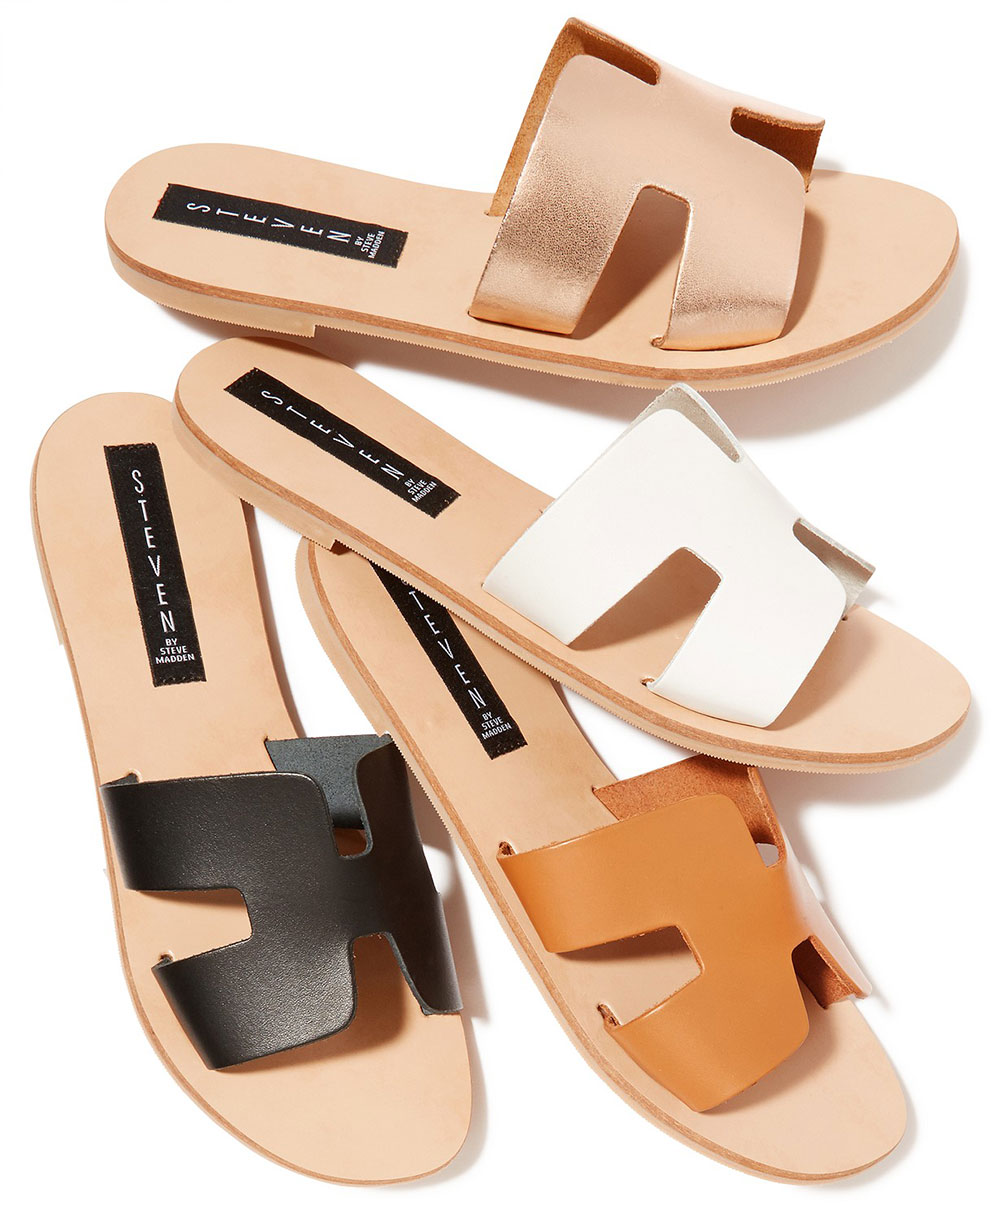 61e843e304b0 Hermès Sandals Dupe - Oran Slides Replica - Where to buy Hermes sandals